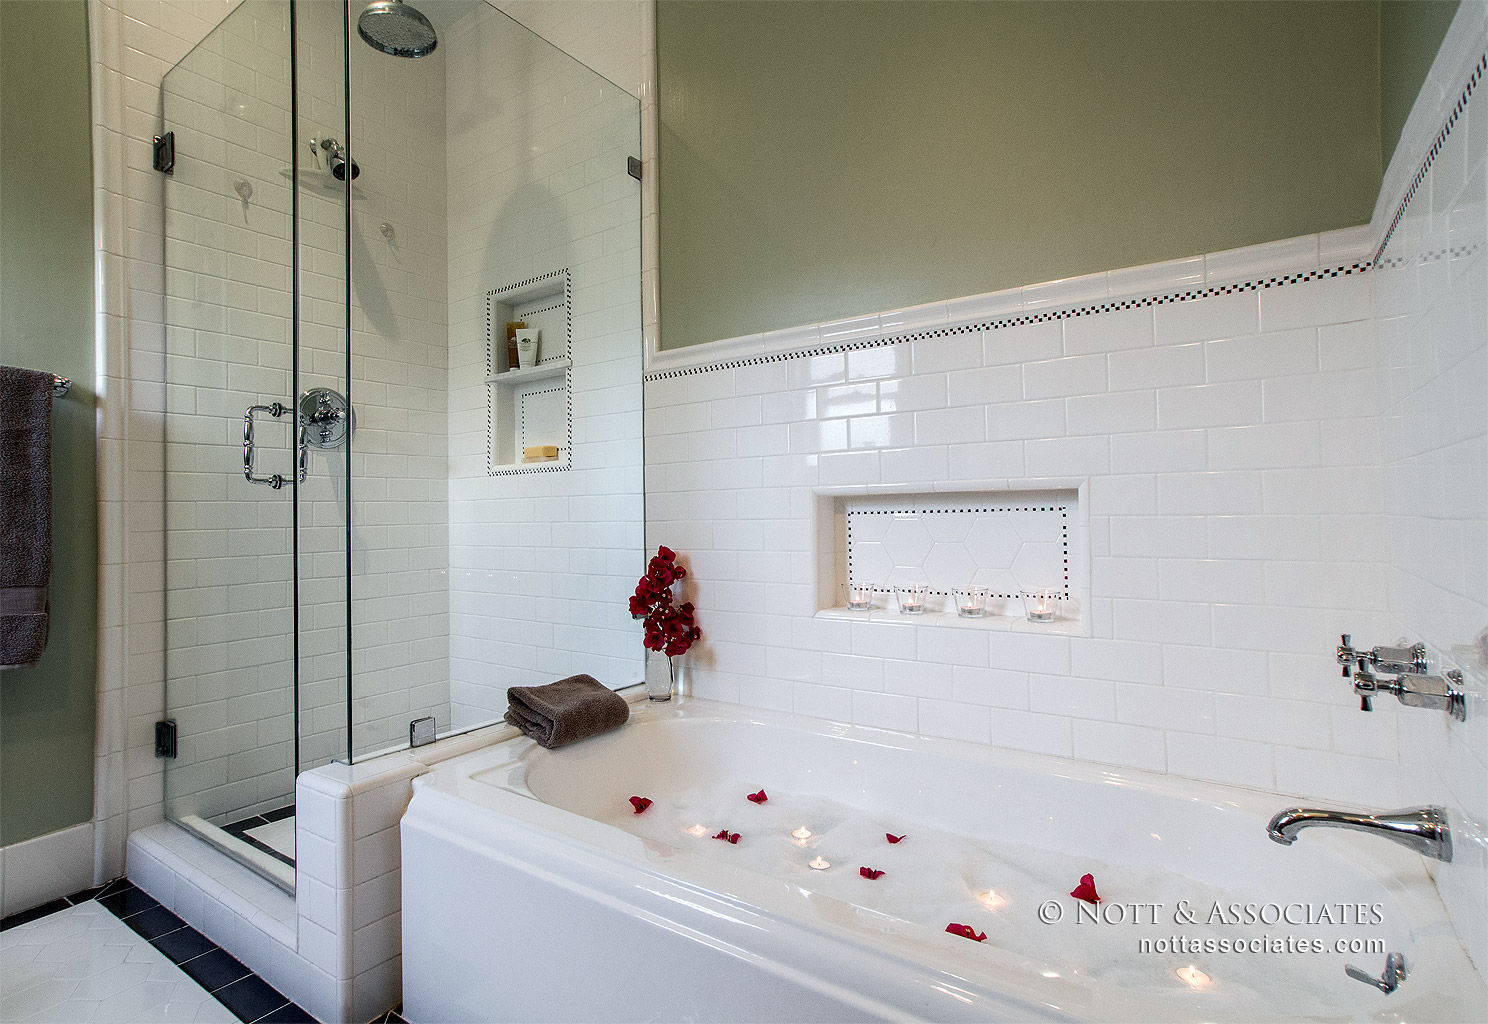 A spa bath with California faucets fixtures and frameless glass shower